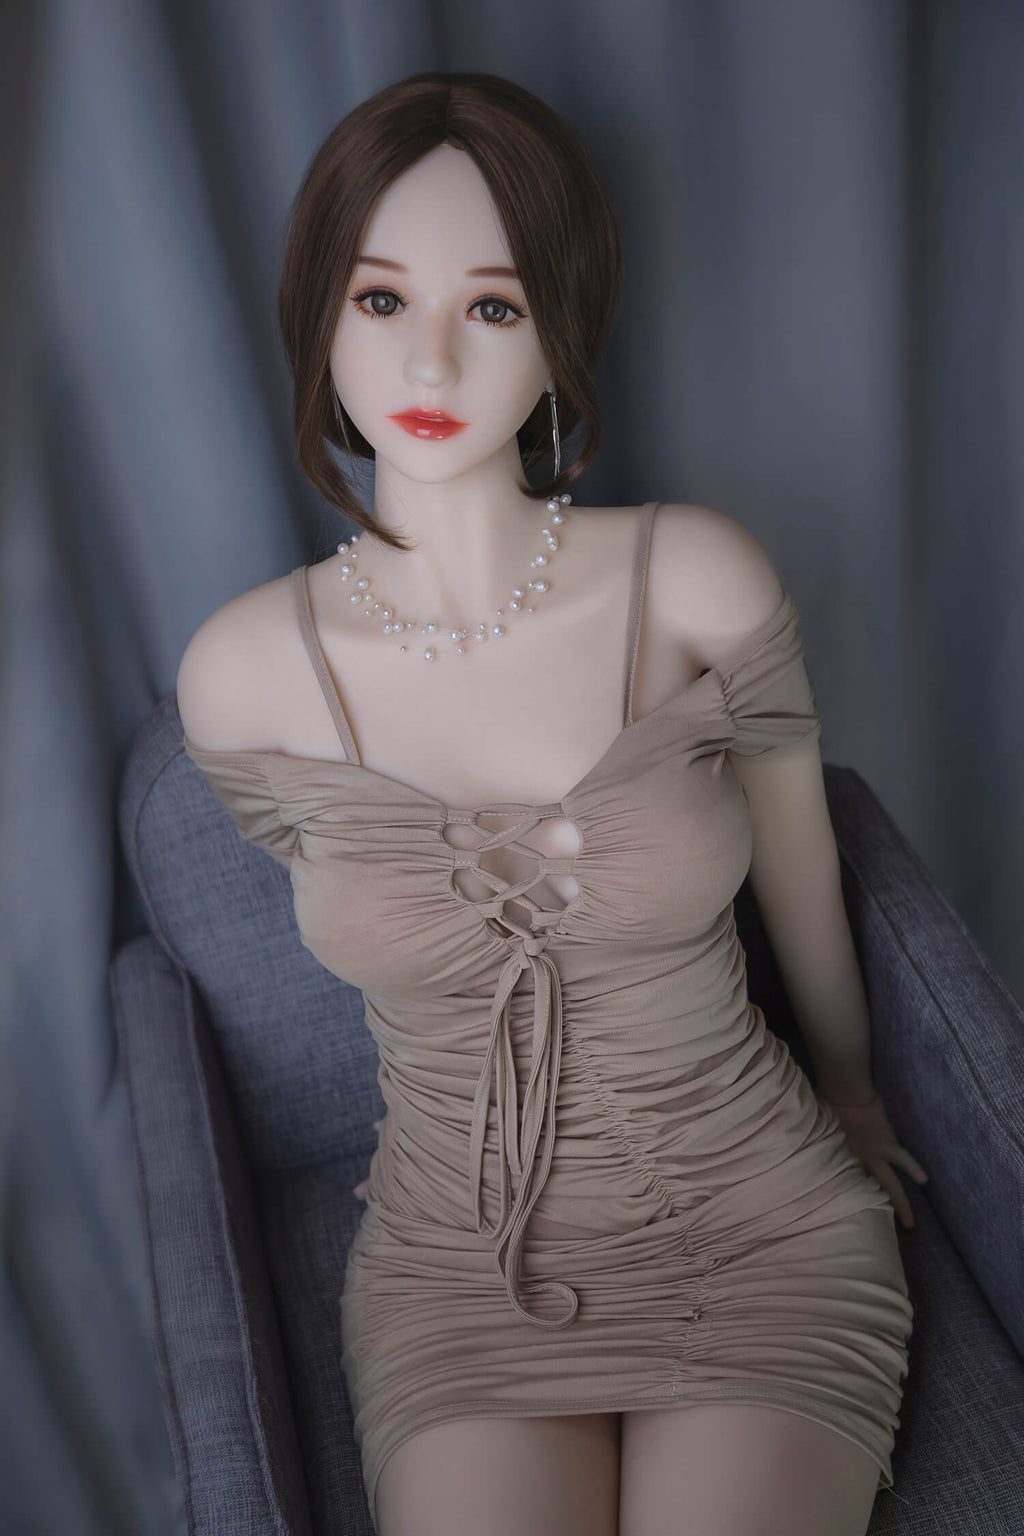 Laura Sex Doll - Housewife Love Doll